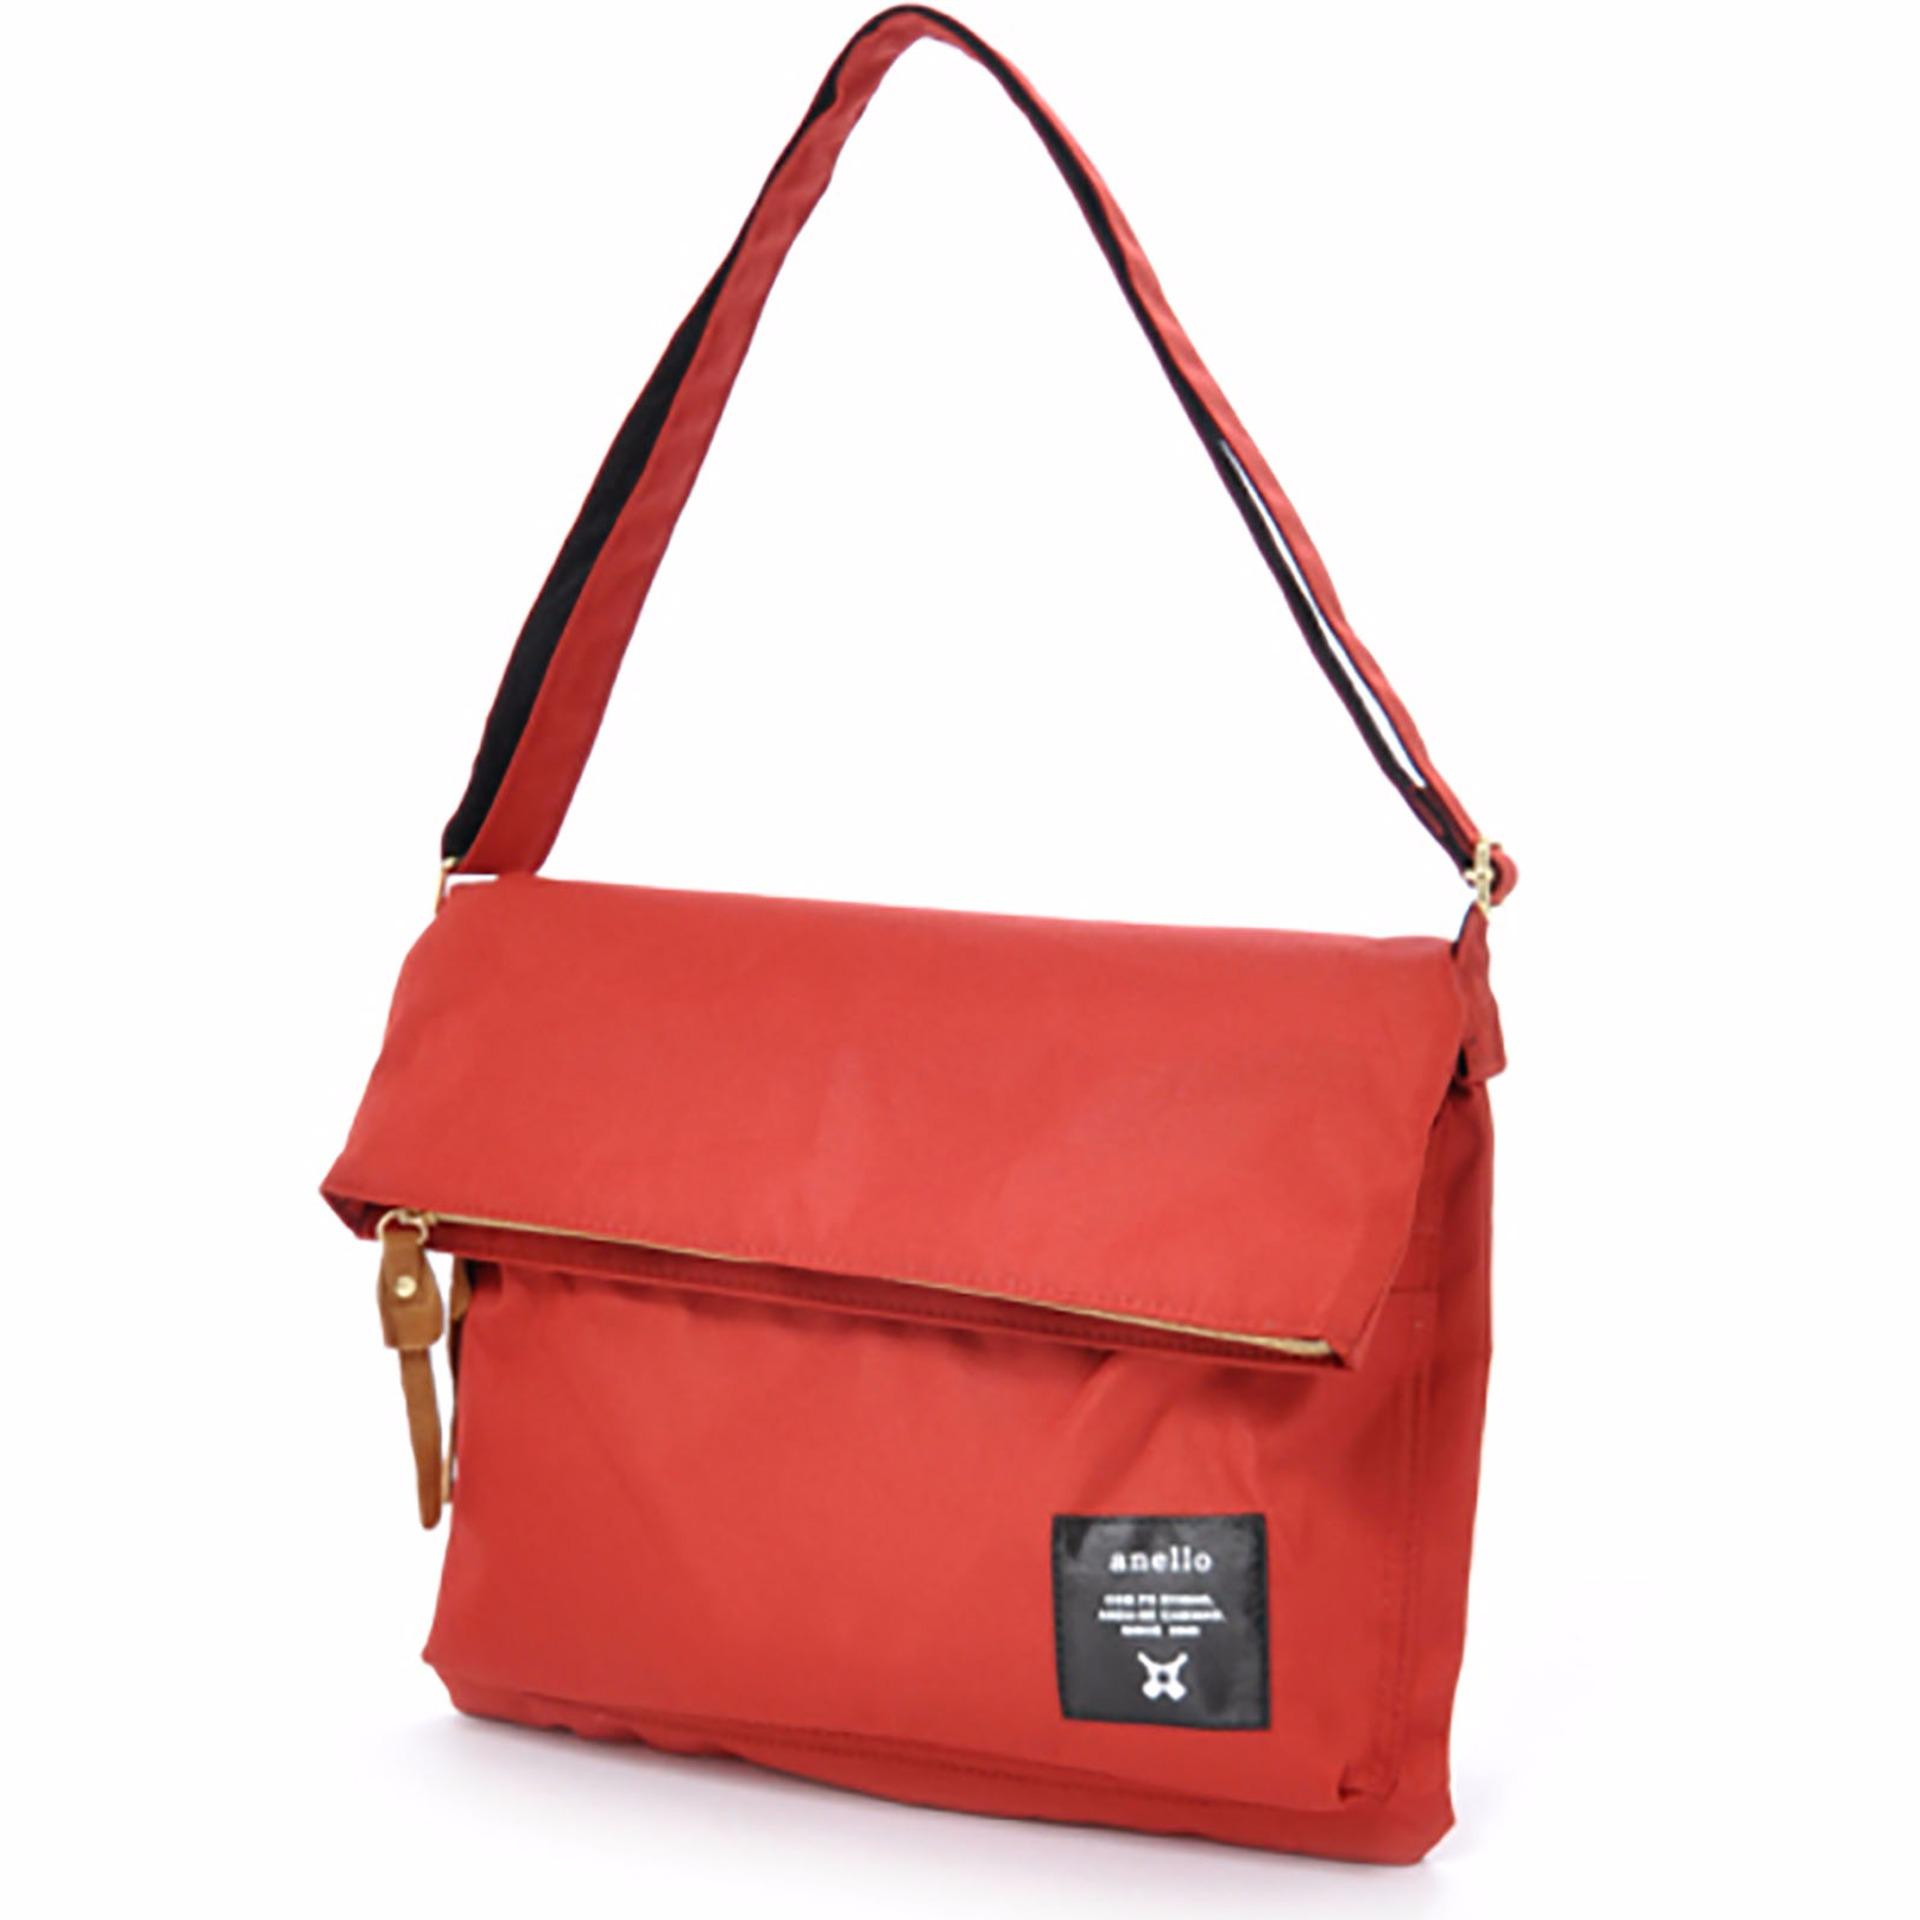 Original Anello Mouth Fold Shoulder Bag AT-B1227 (Dark Orange)